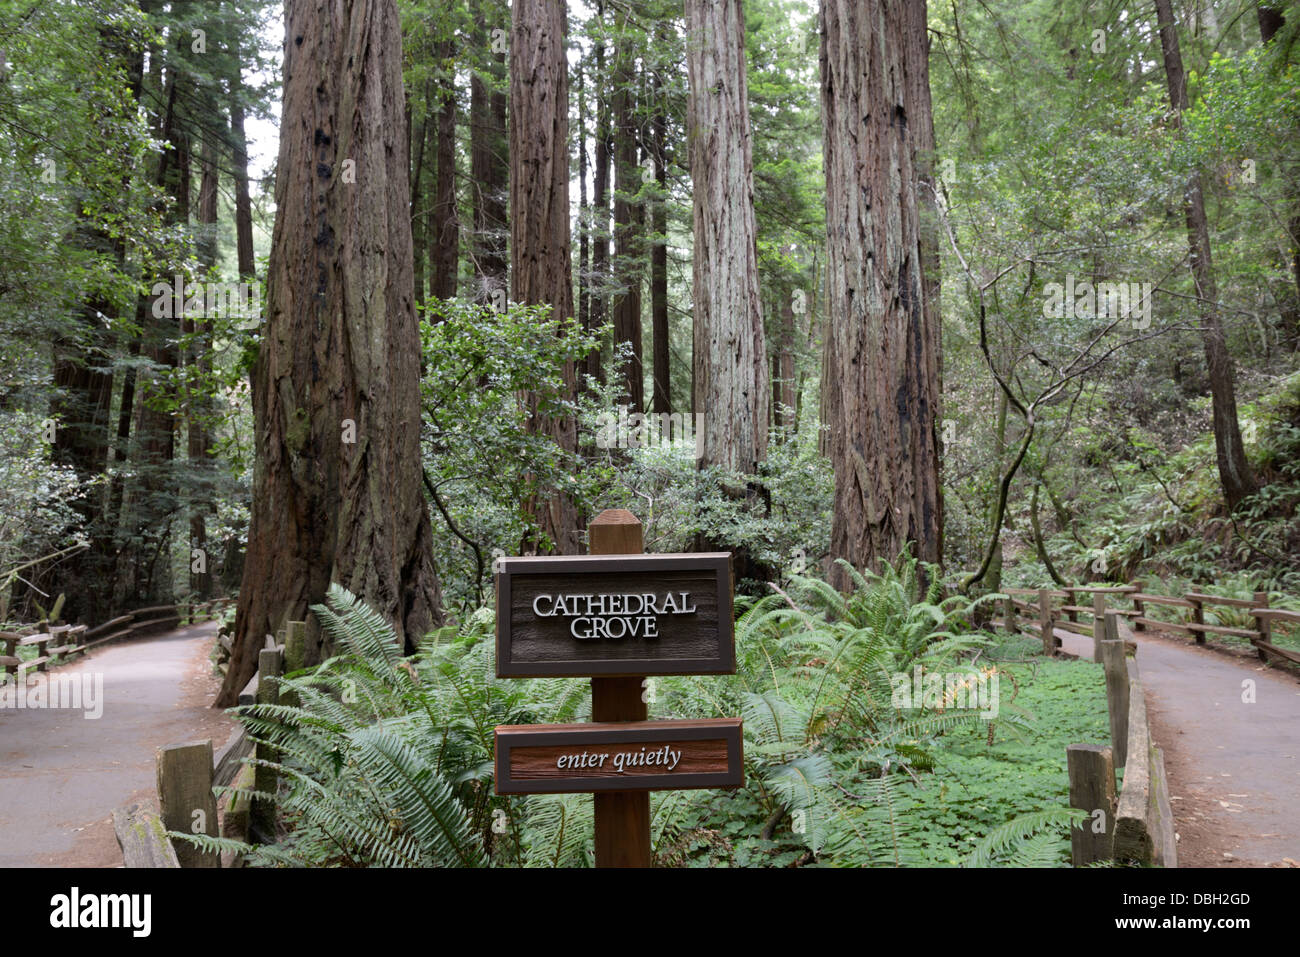 Trail through the Cathedral Grove of Coast Redwoods, Sequoia sempervirens, Muir Woods National Monument - Stock Image